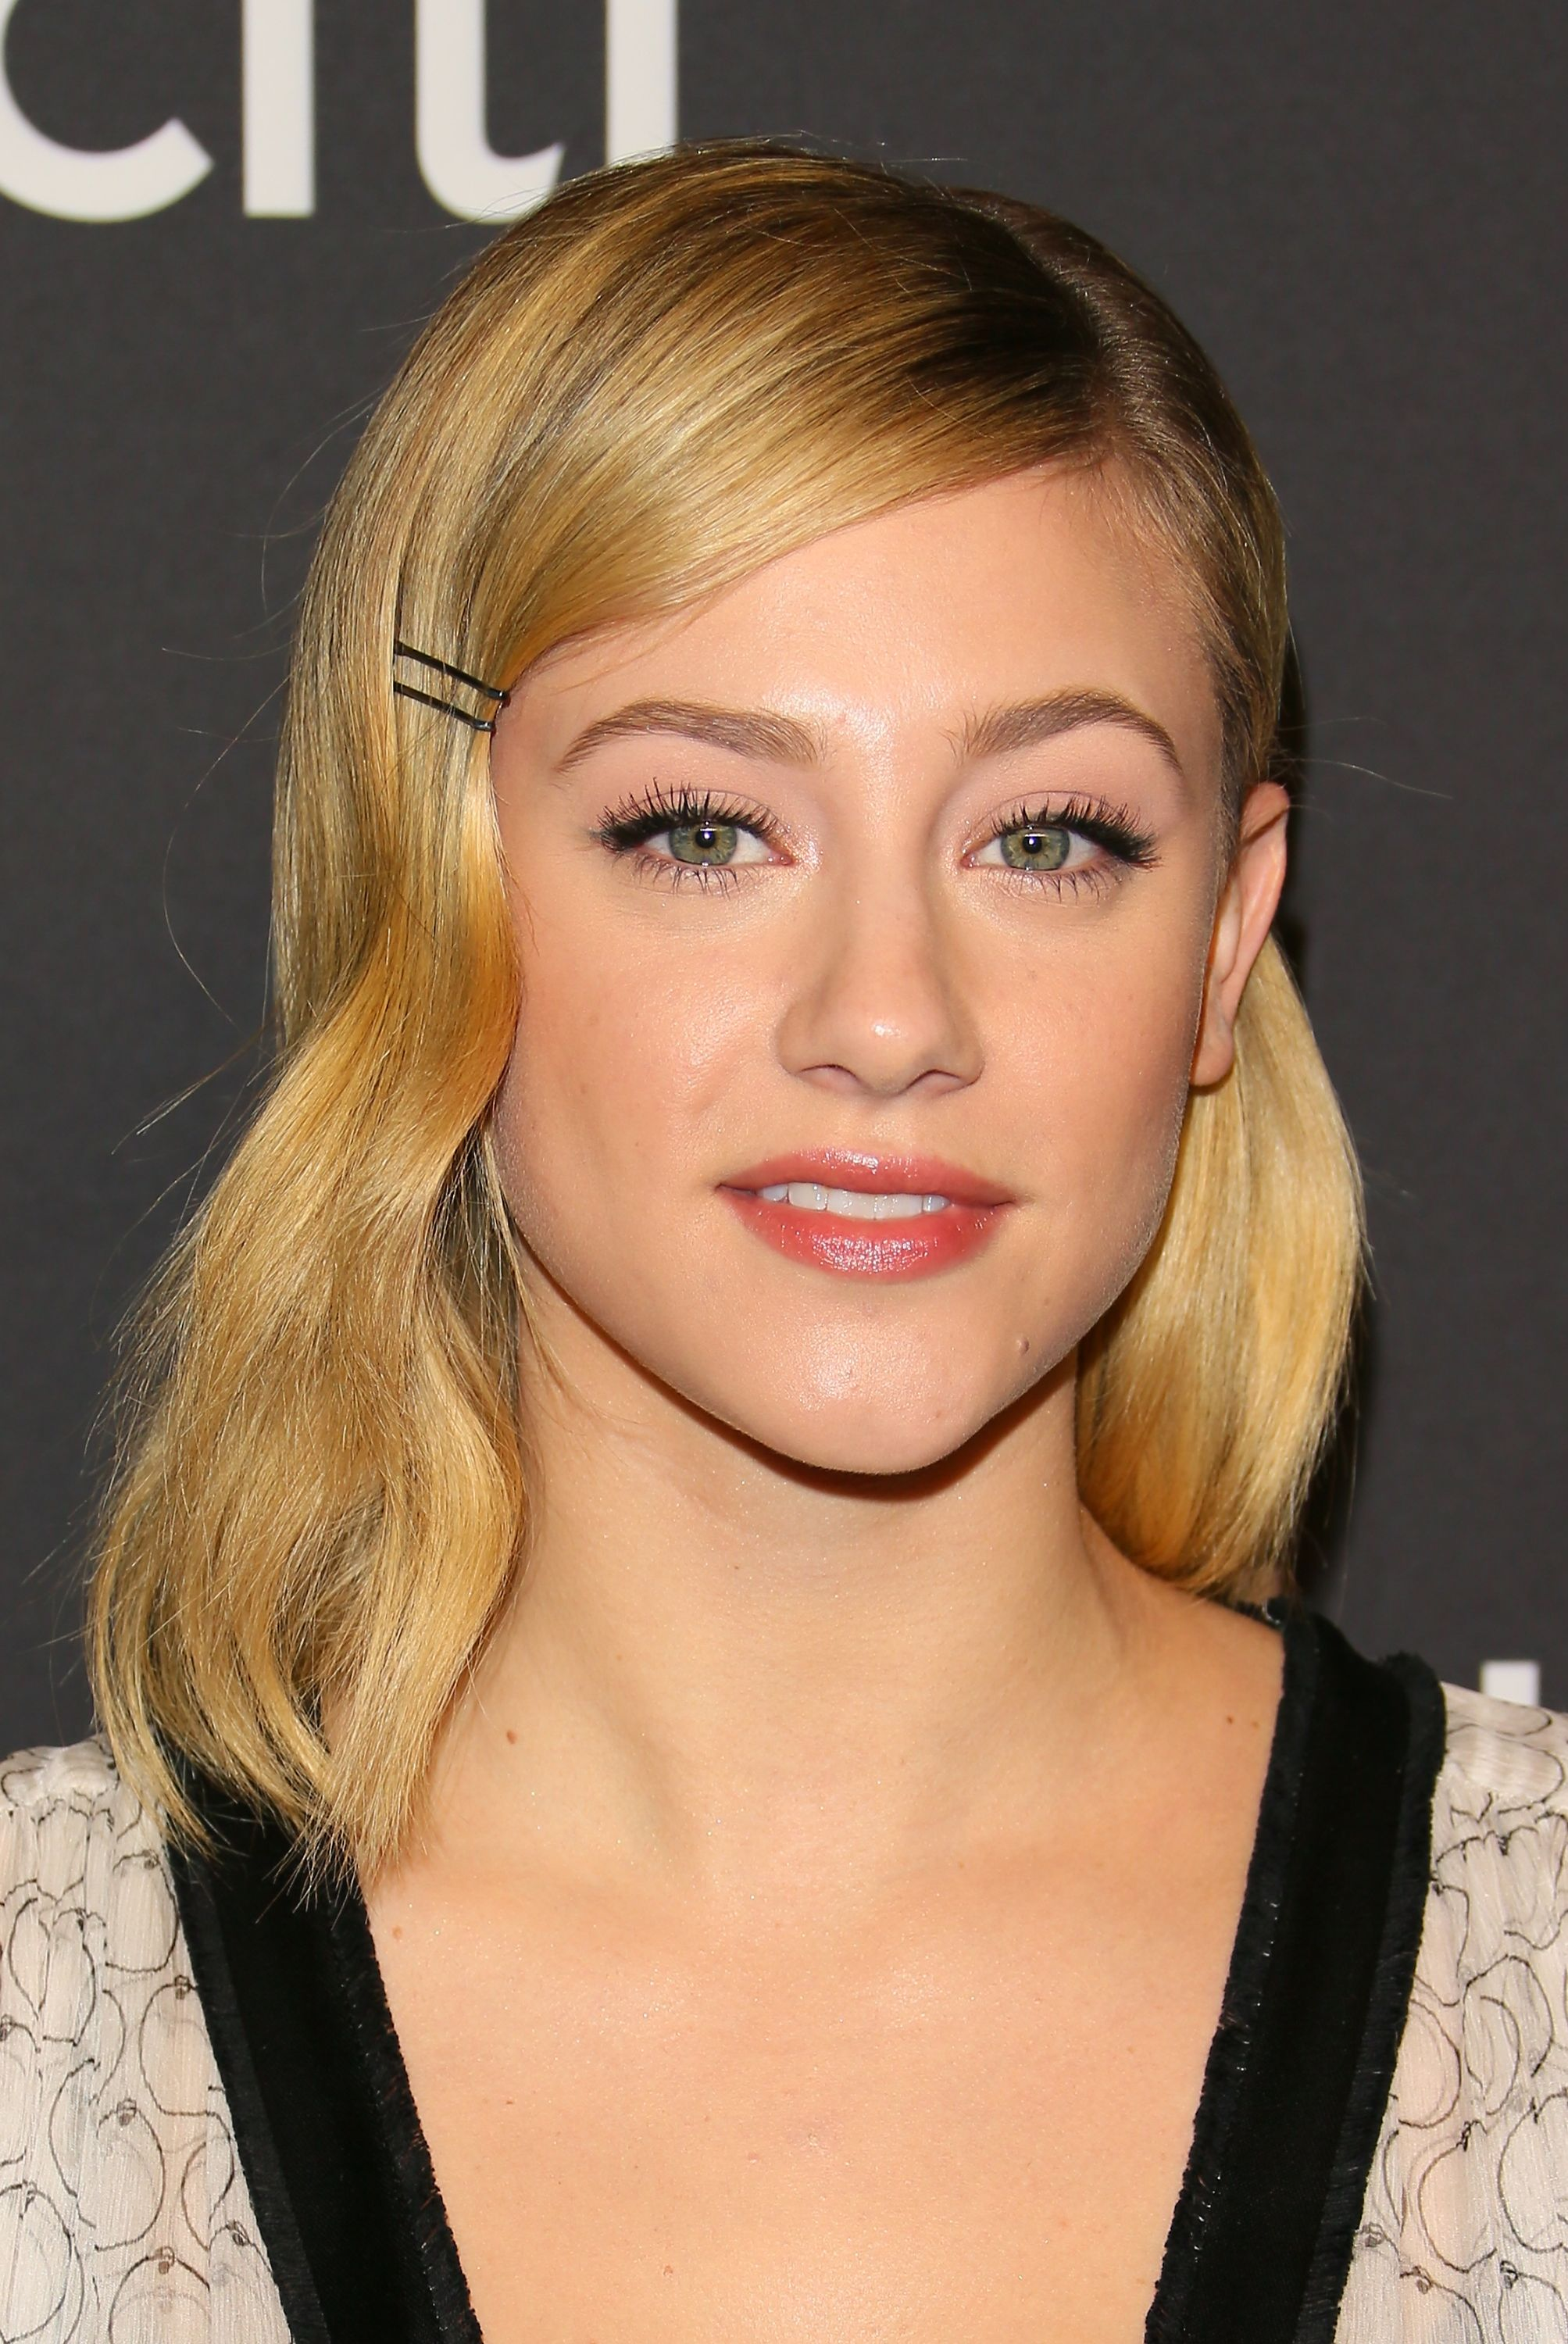 Lili Reinhart Adding the most basic hair accessories, like bobby pins, adds so much more of a shape to short styles. I love the structured look of Lili Reinhart's sunny blonde lob completed with a soft wave.